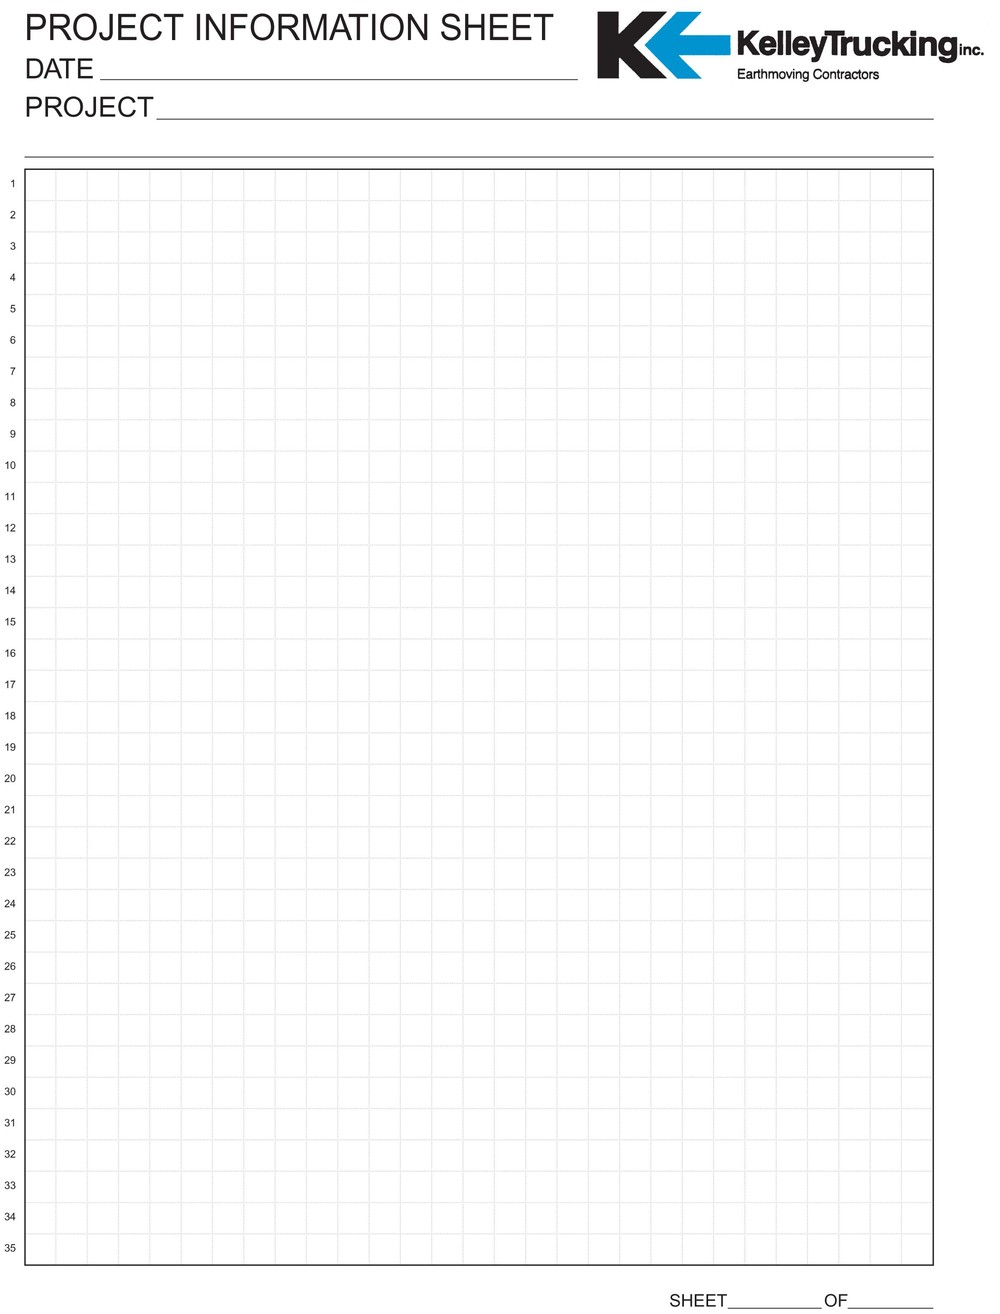 Kelley Trucking Grid Sheet.jpg